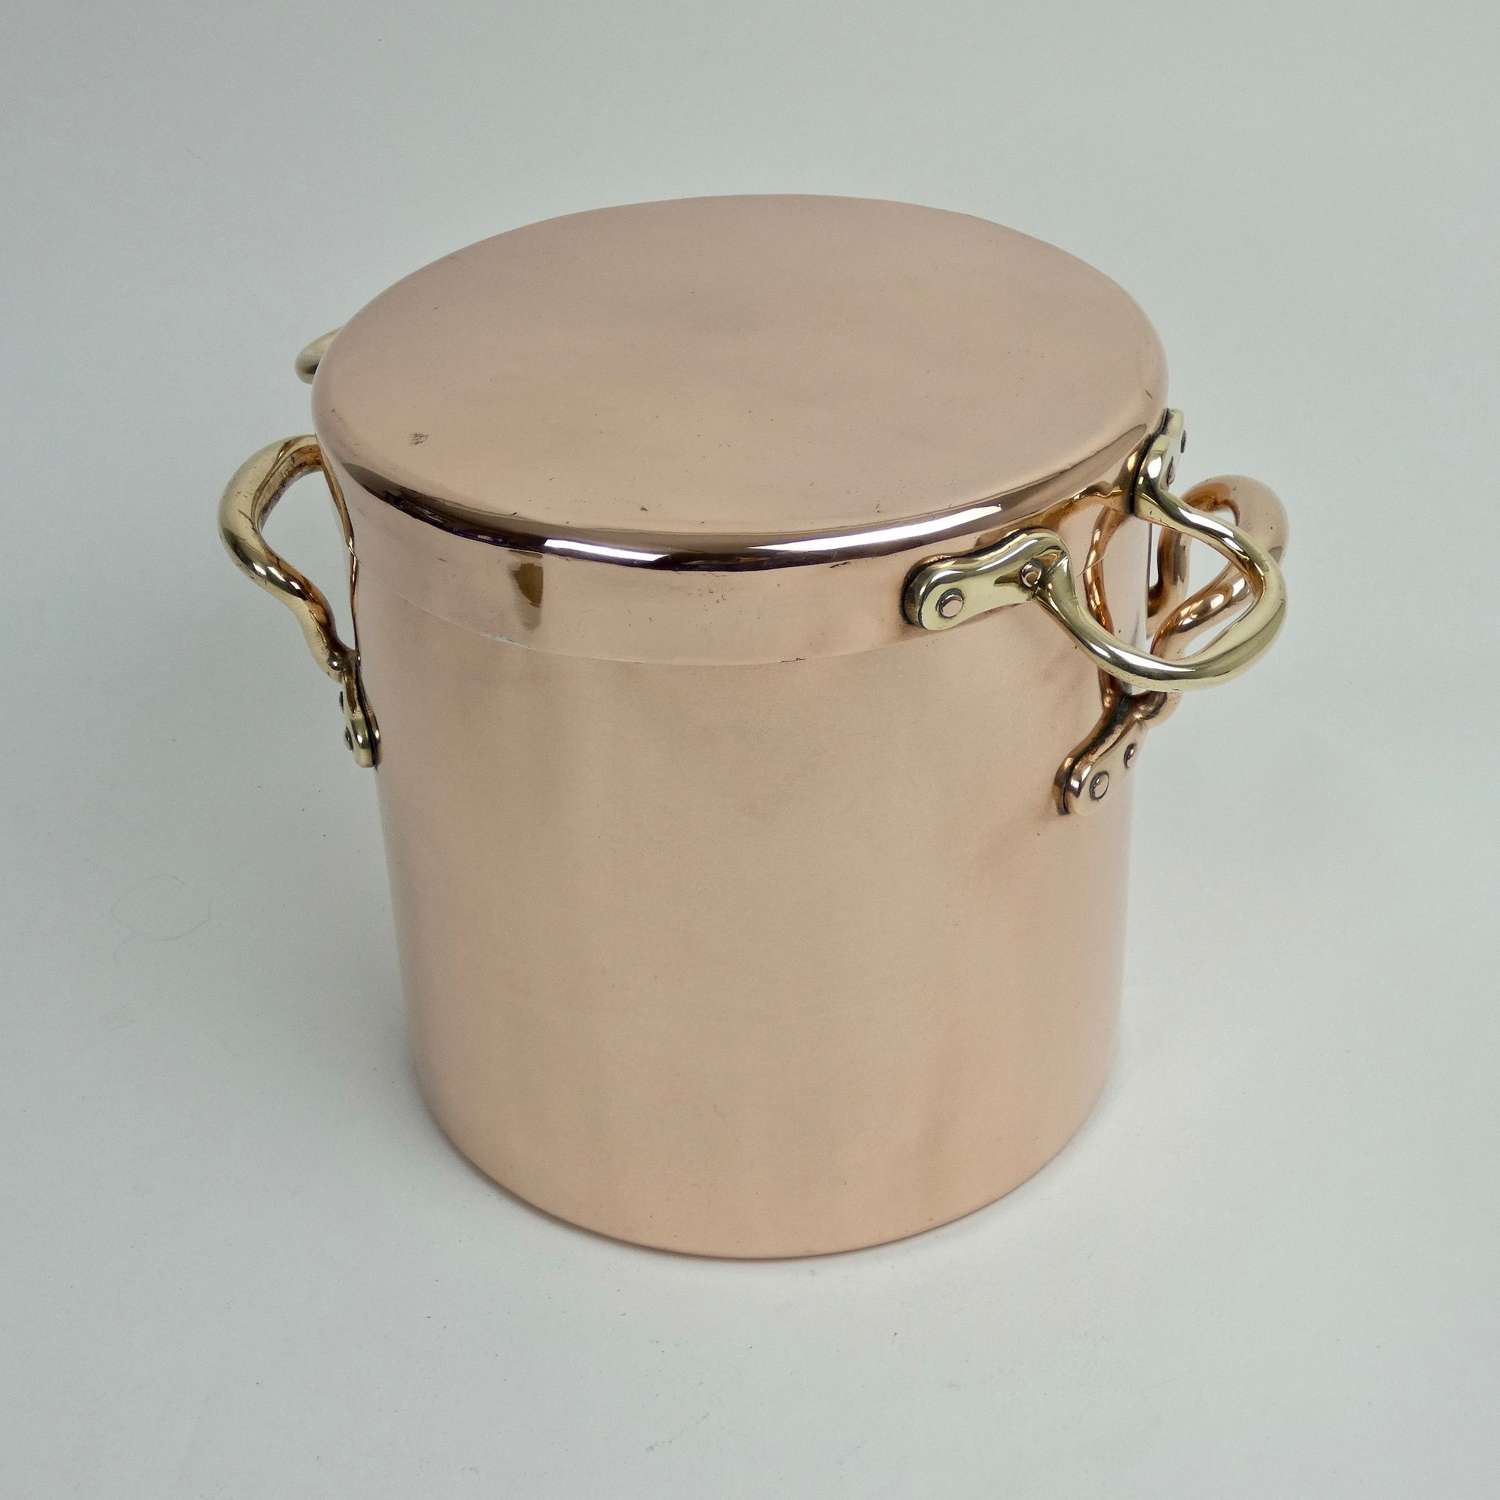 English copper stockpot with sauté lid